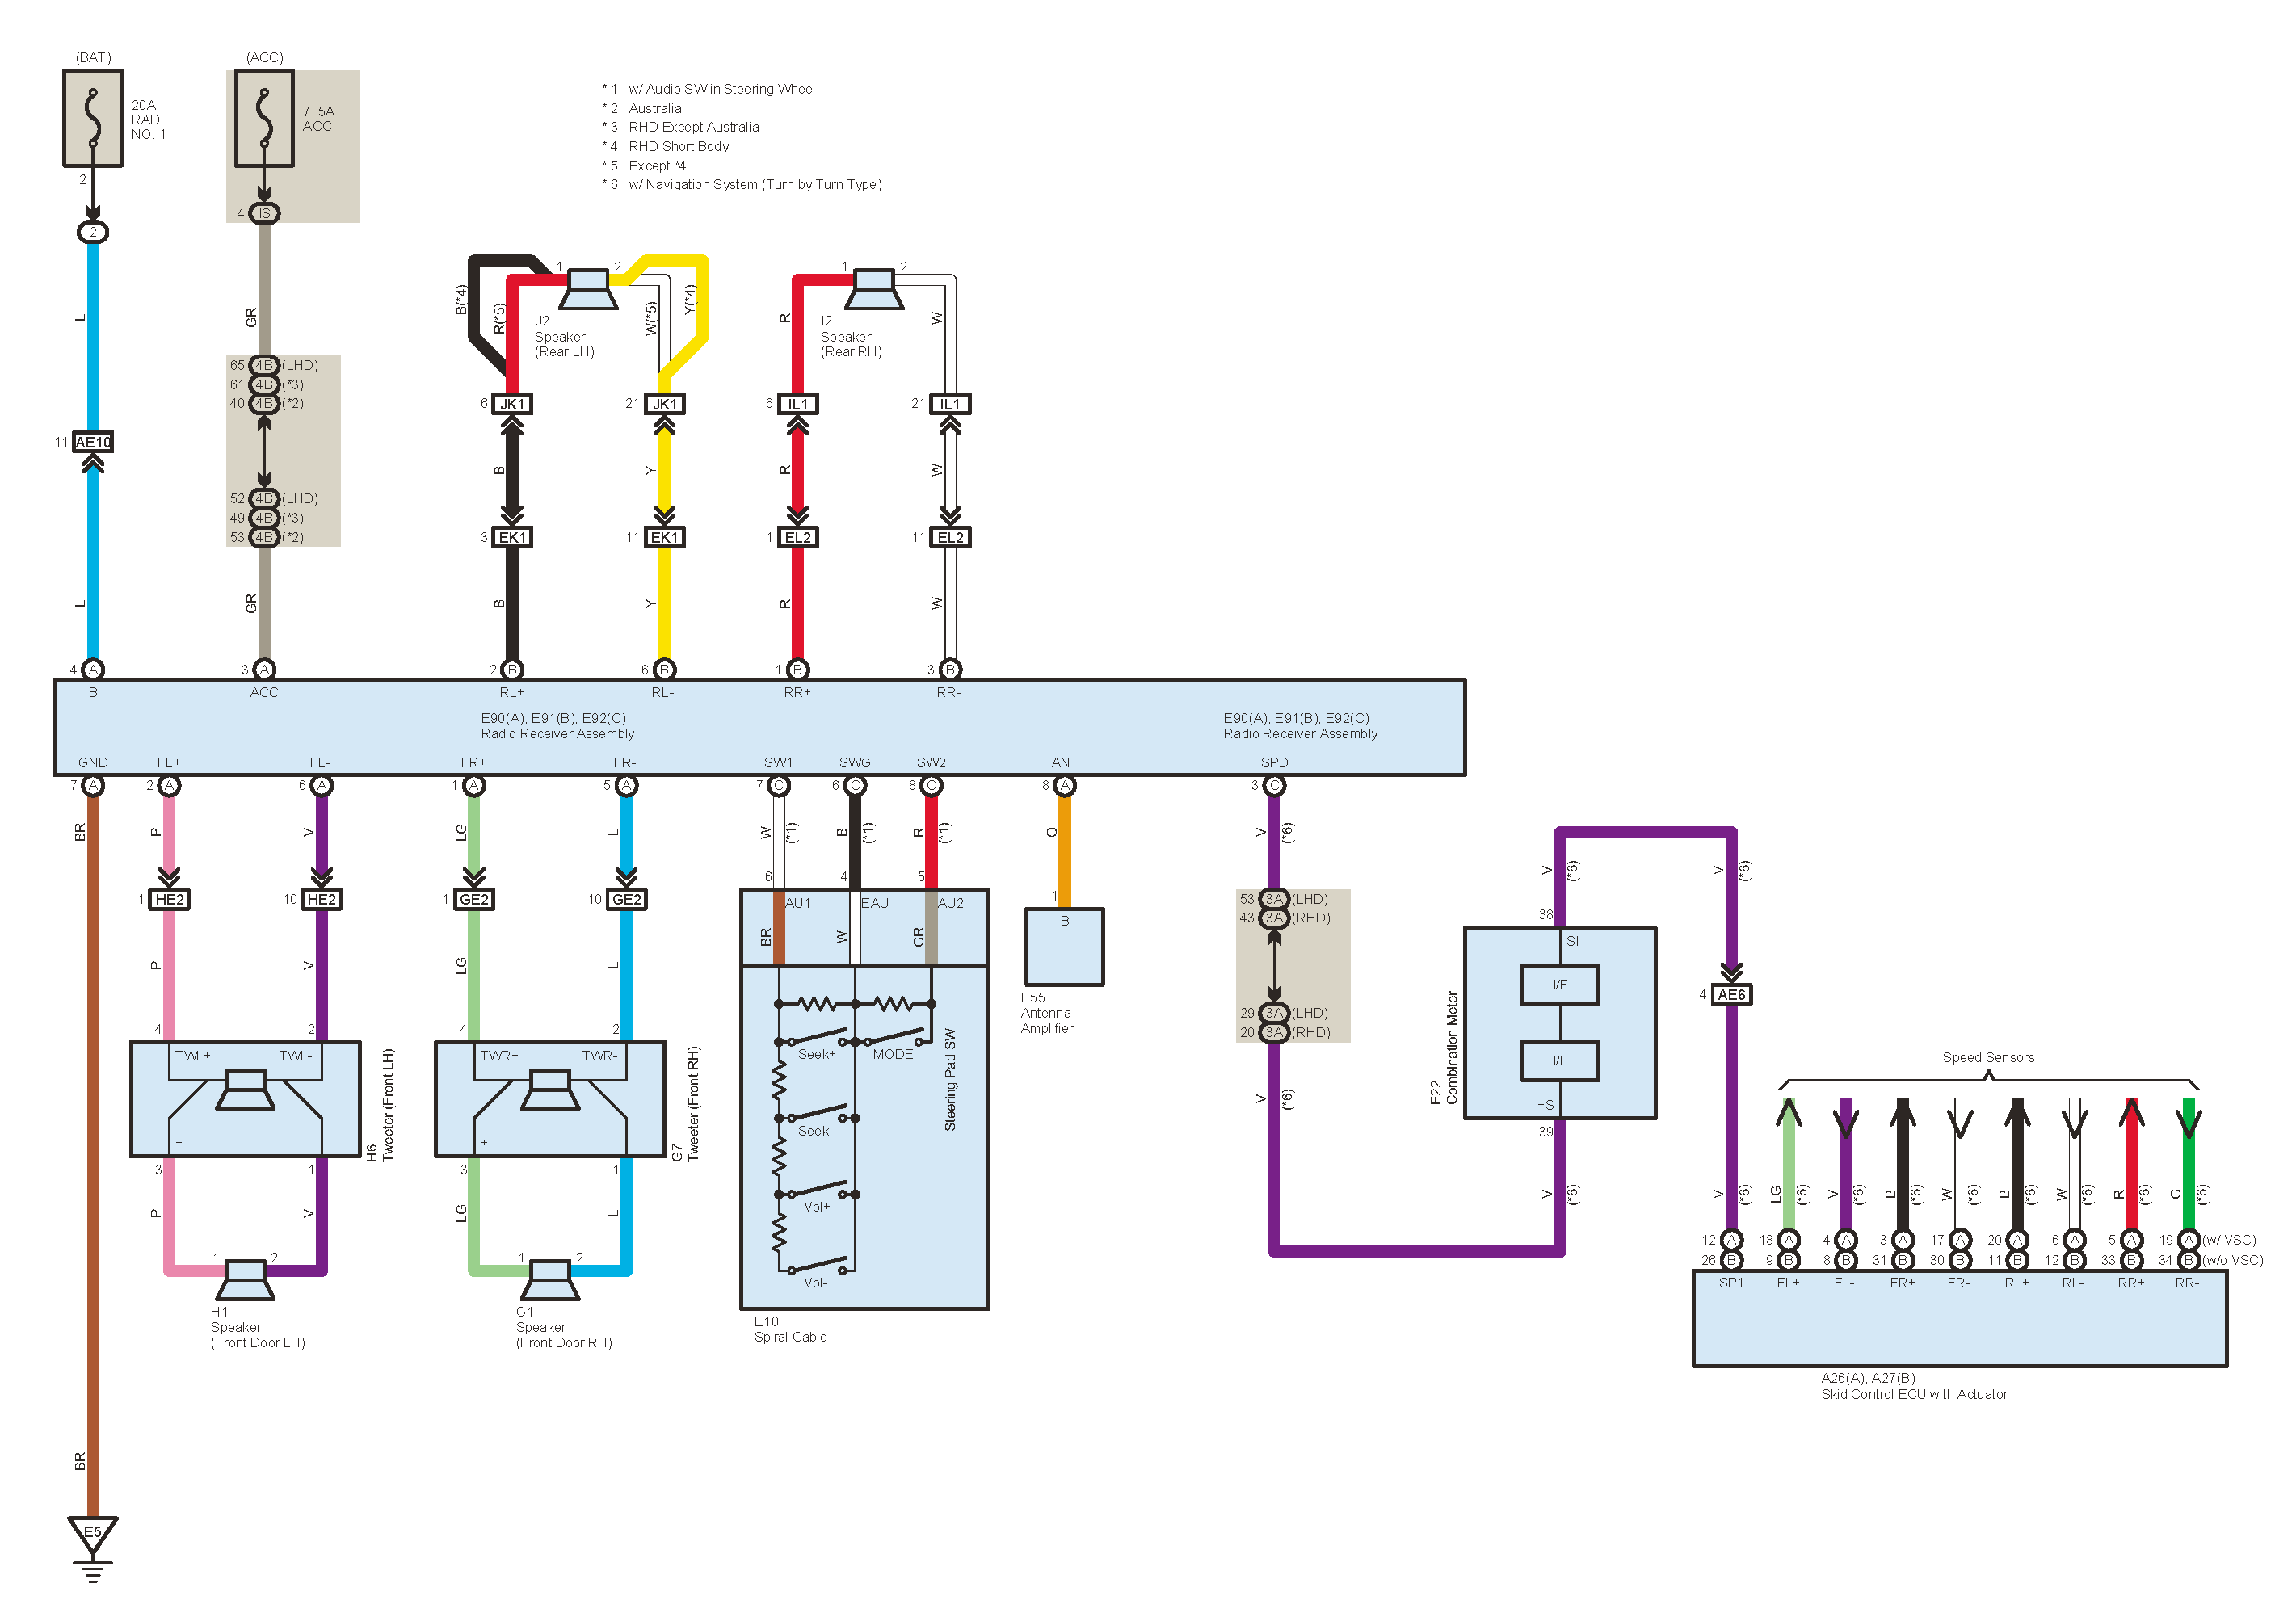 2012 Rav4 Fuse Box Diagram - All Diagram Schematics Rav Wiring Diagram on